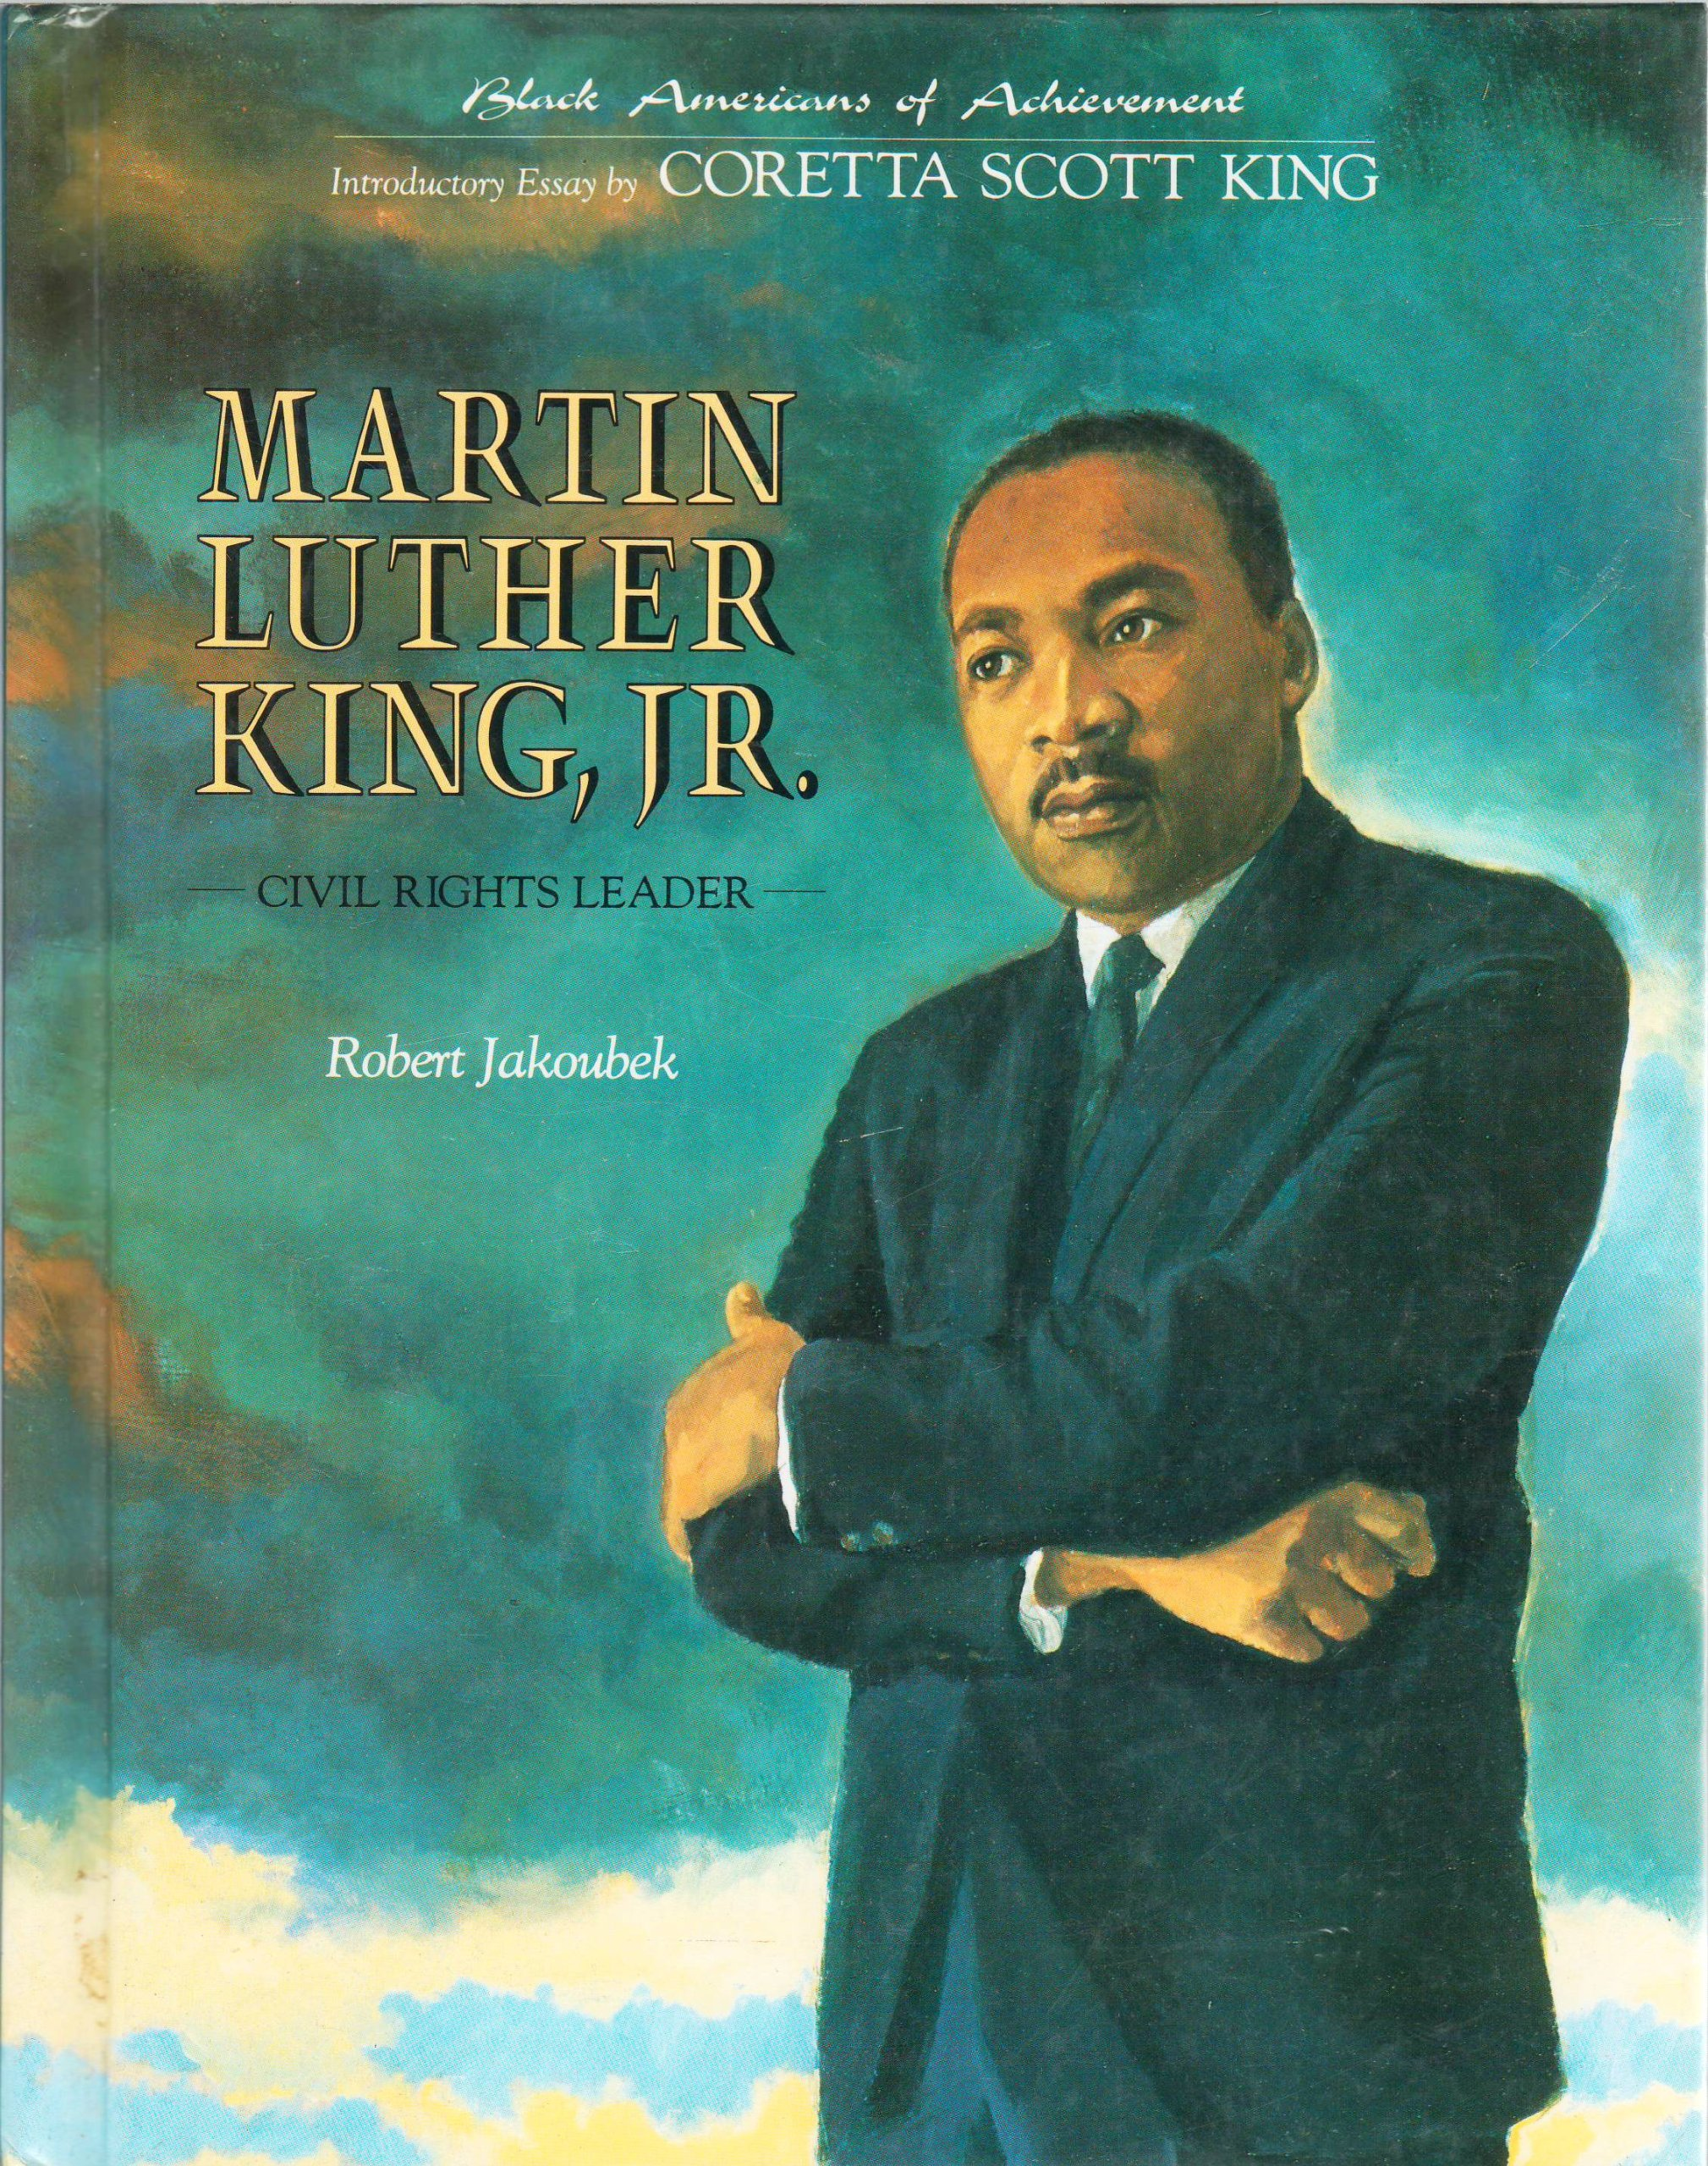 Martin Luther King, Jr. (Black Americans of Achievement), Robert E. Jakoubek